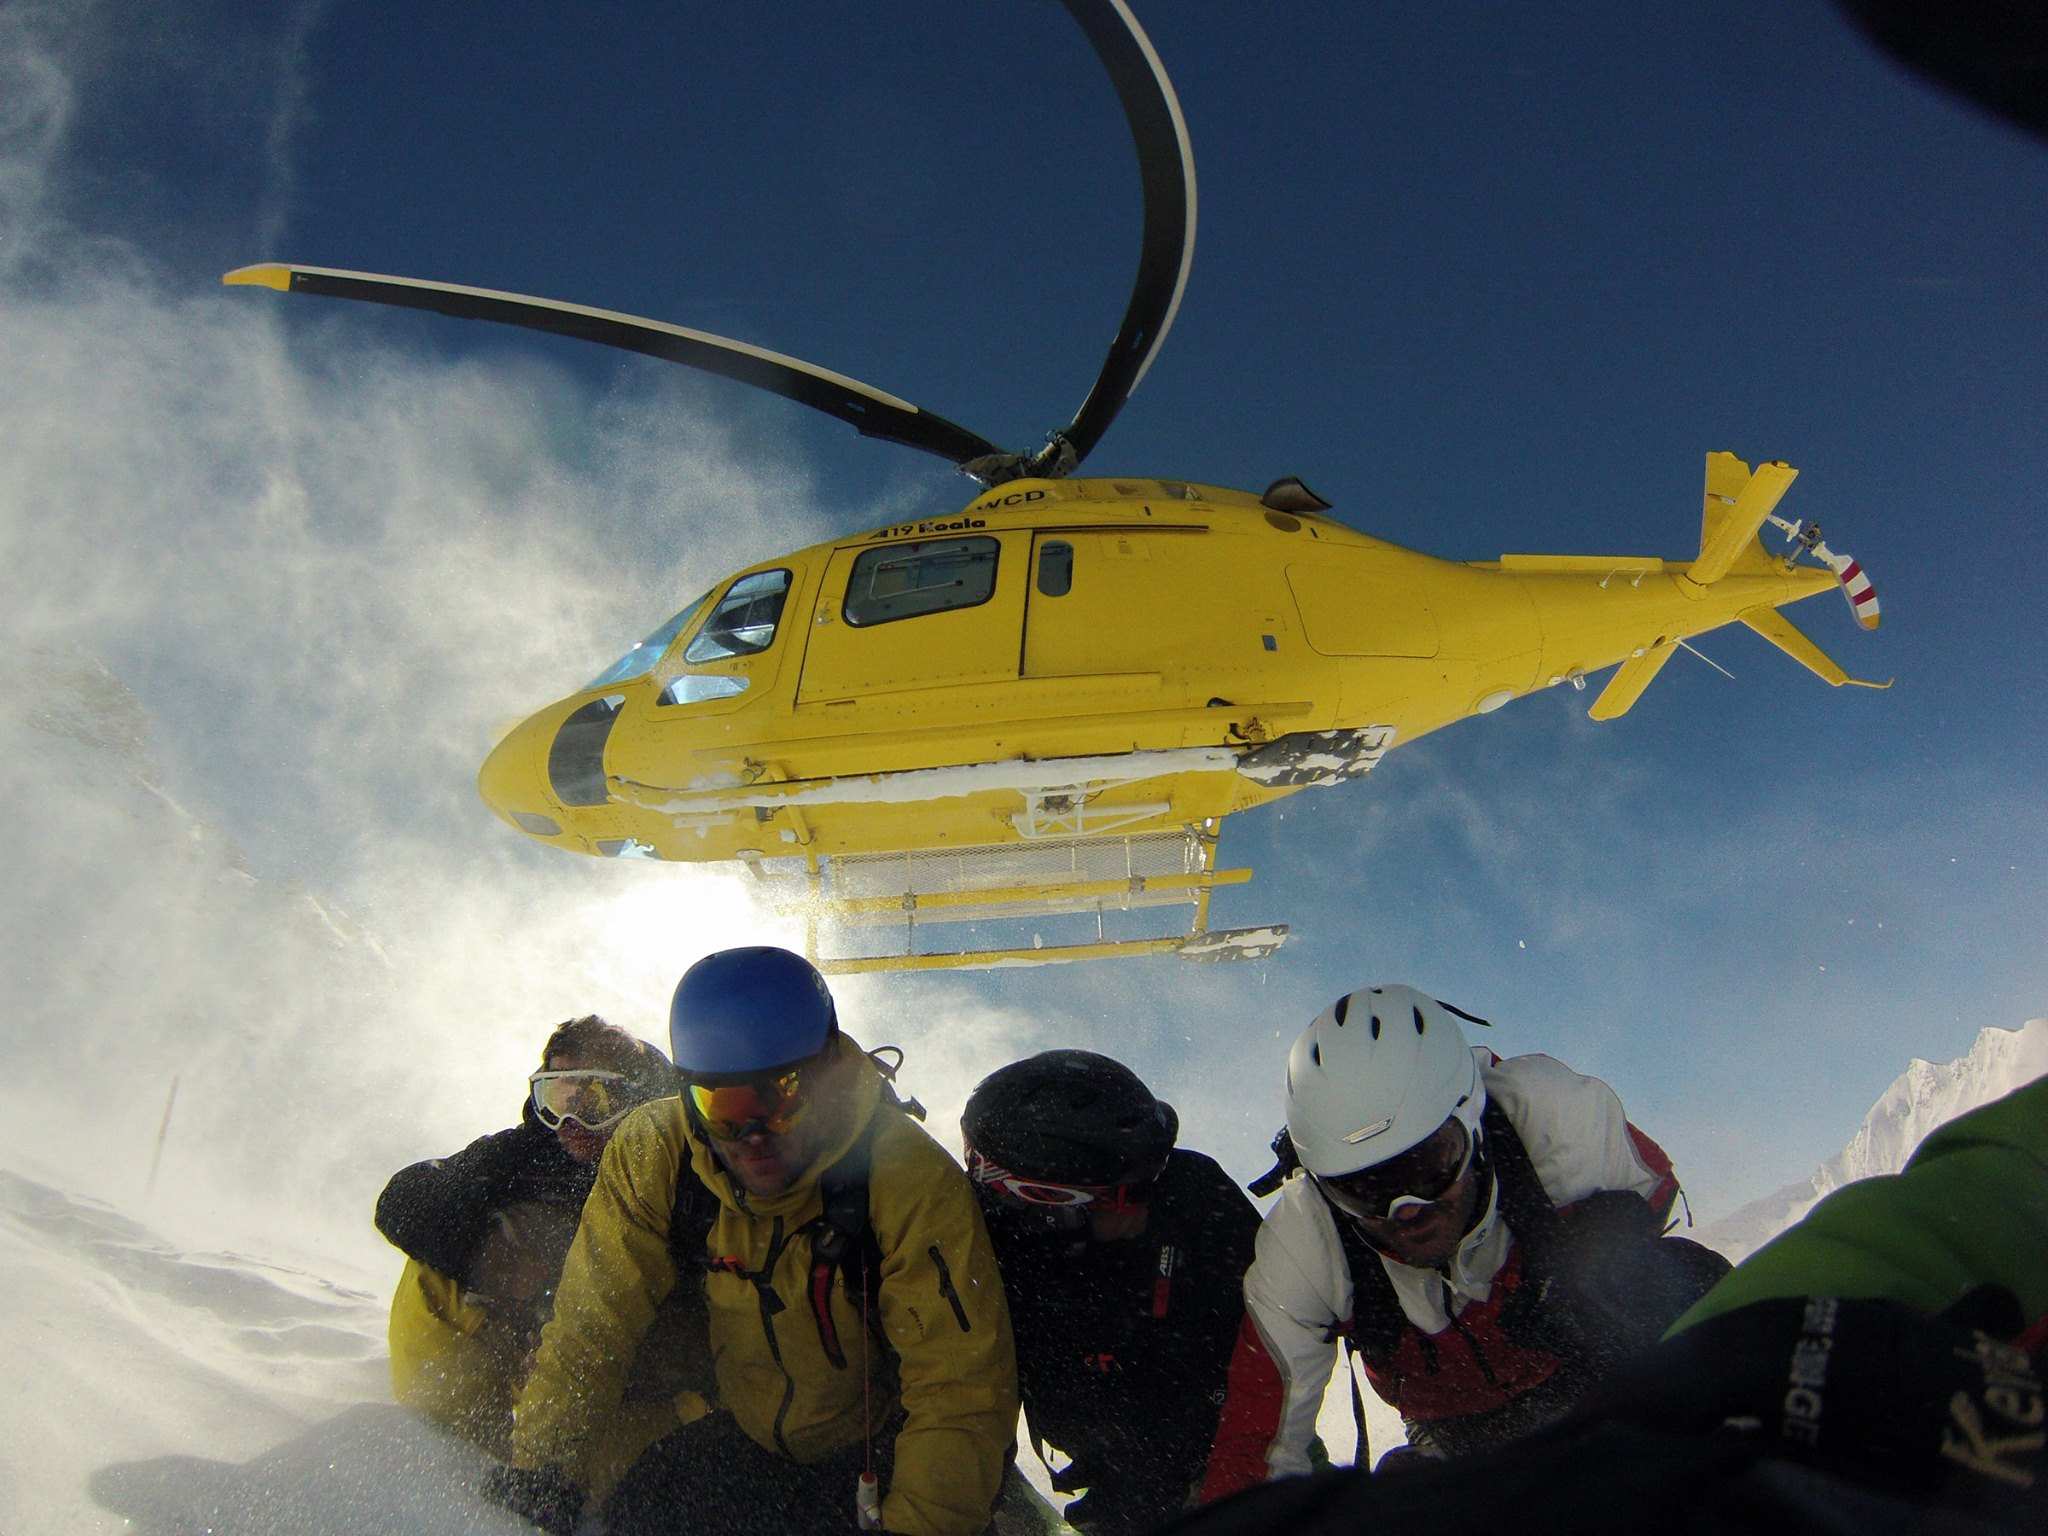 skiers duck as helicopter tires to land in snowy conditions